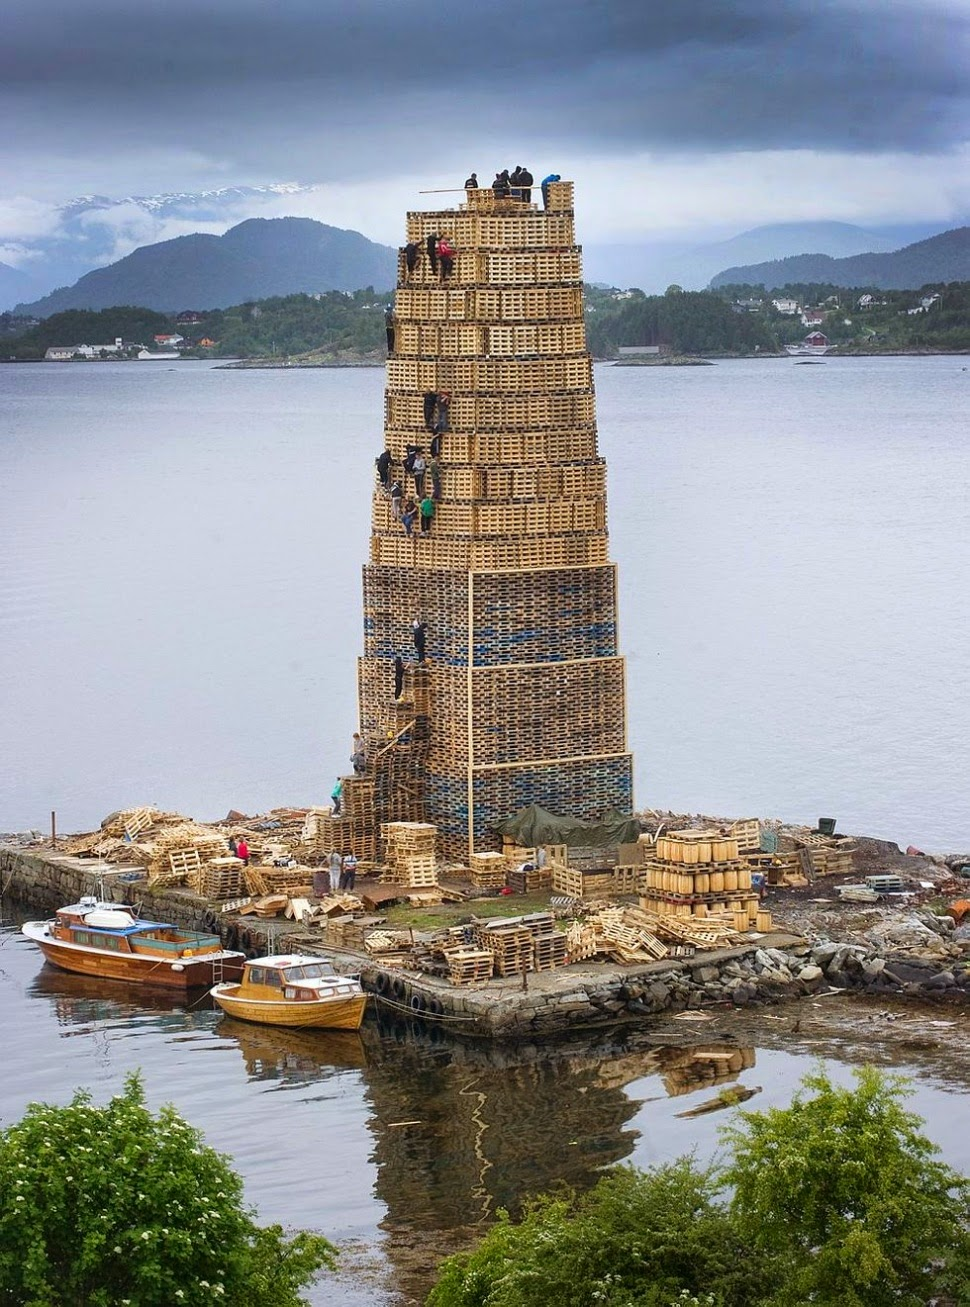 Norwegian Built Tower Of Pallets For Worlds Biggest Bonfire Pics - Norway creates biggest bonfire world